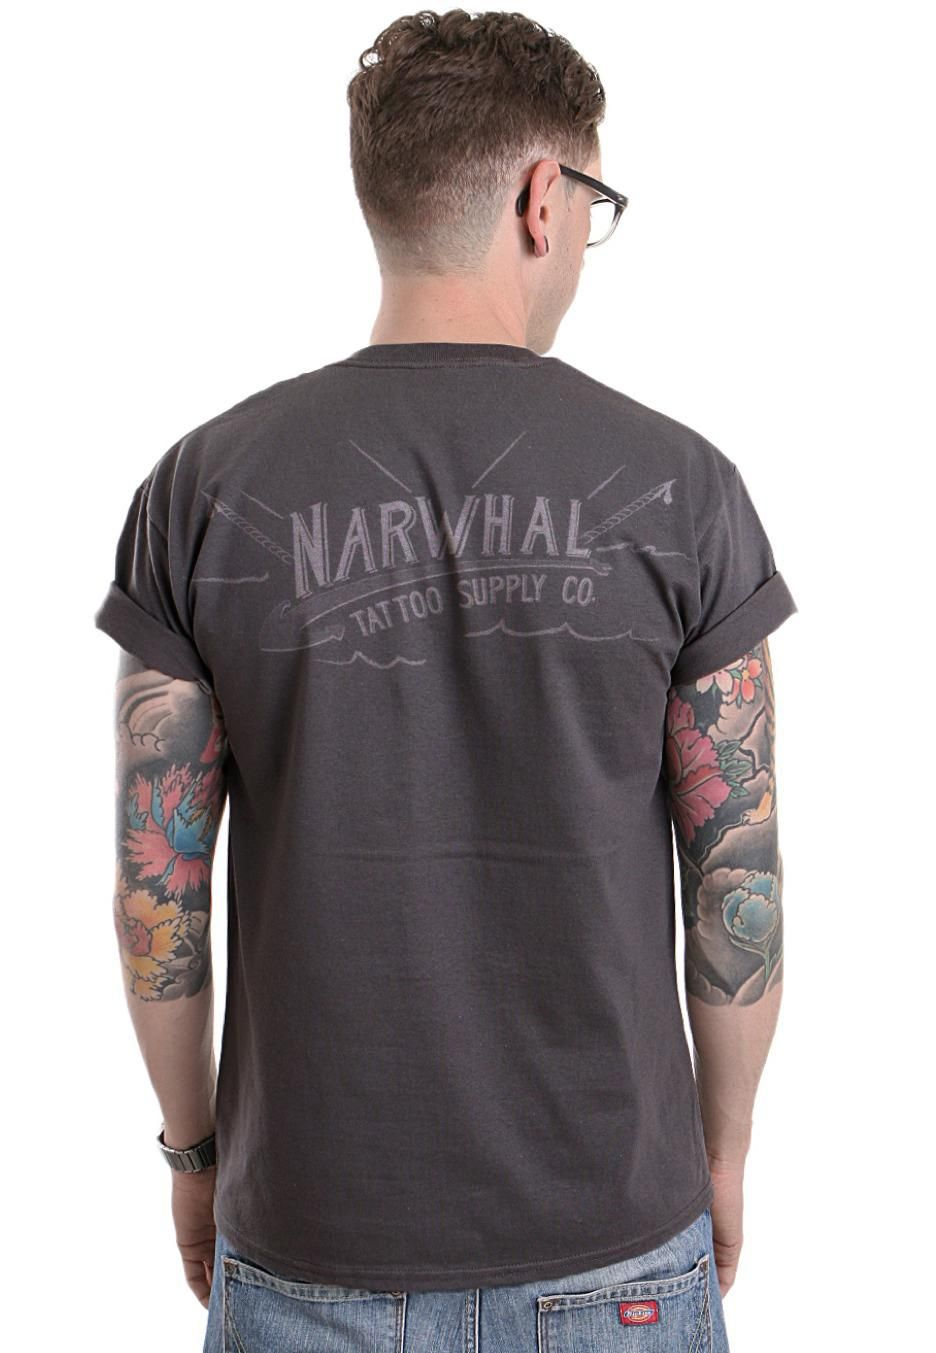 Narwhal Tattoo Supply Co. - image 11 - student project